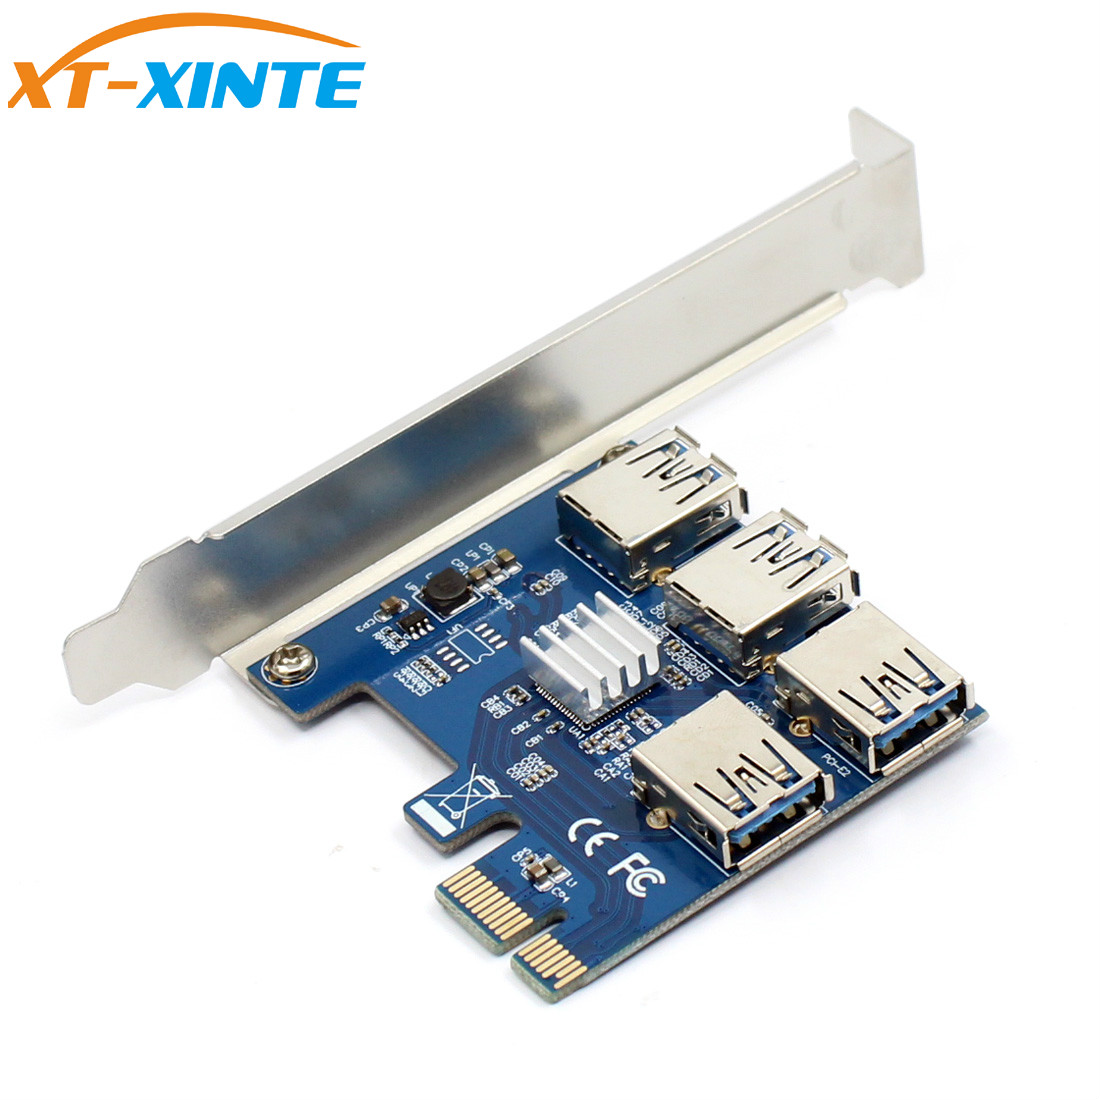 60cm PCIe 1 To 4 PCIe 16X Riser Card PCI-E 1X To 4 USB 3.0 PCI-E Riser Adapter Port Multiplier Card For BTC Bitcoin Miner Mining(China)